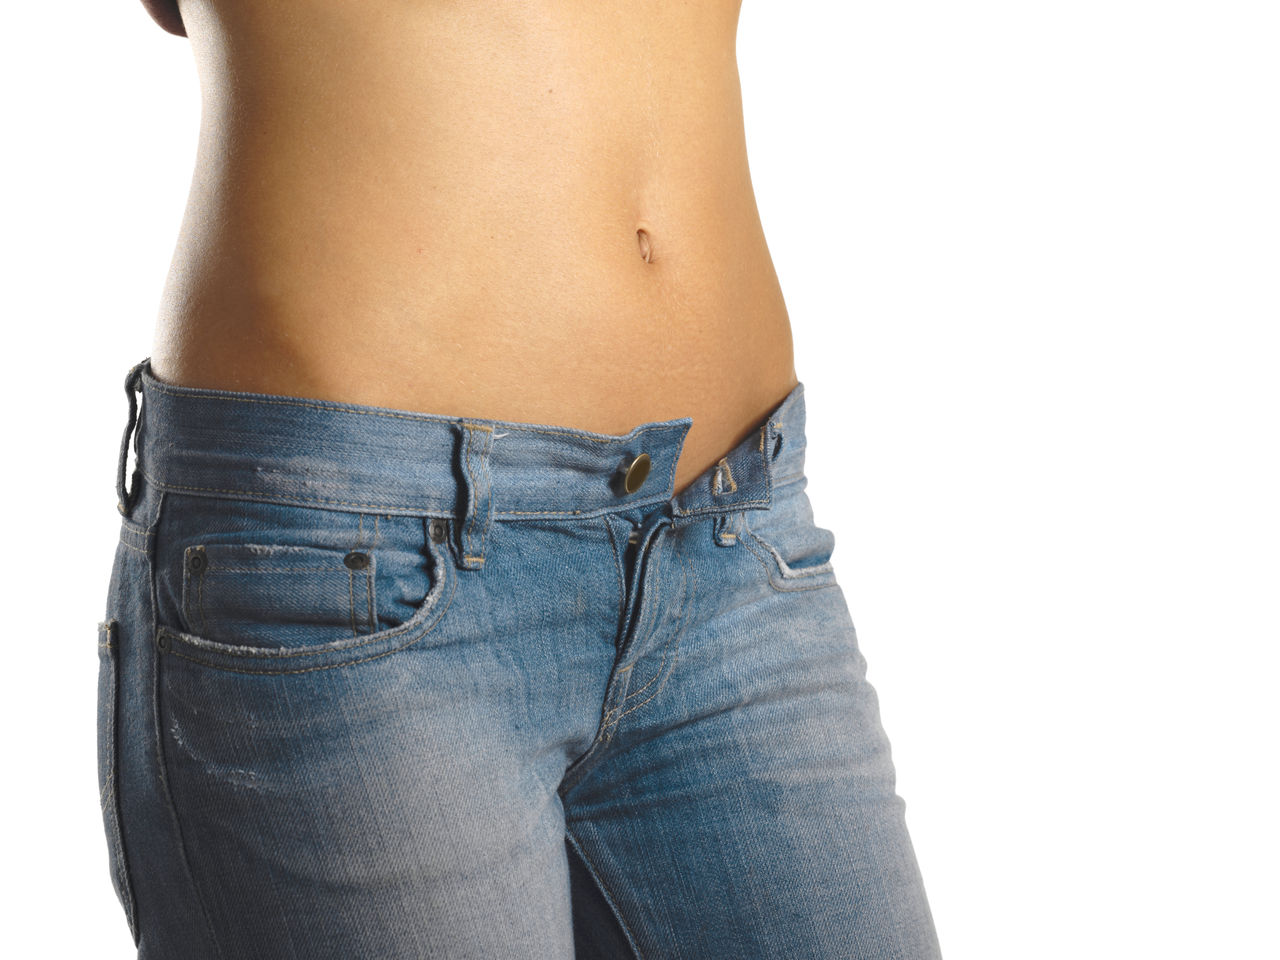 Midsection Of Slim Woman Wearing Jeans Against White Background